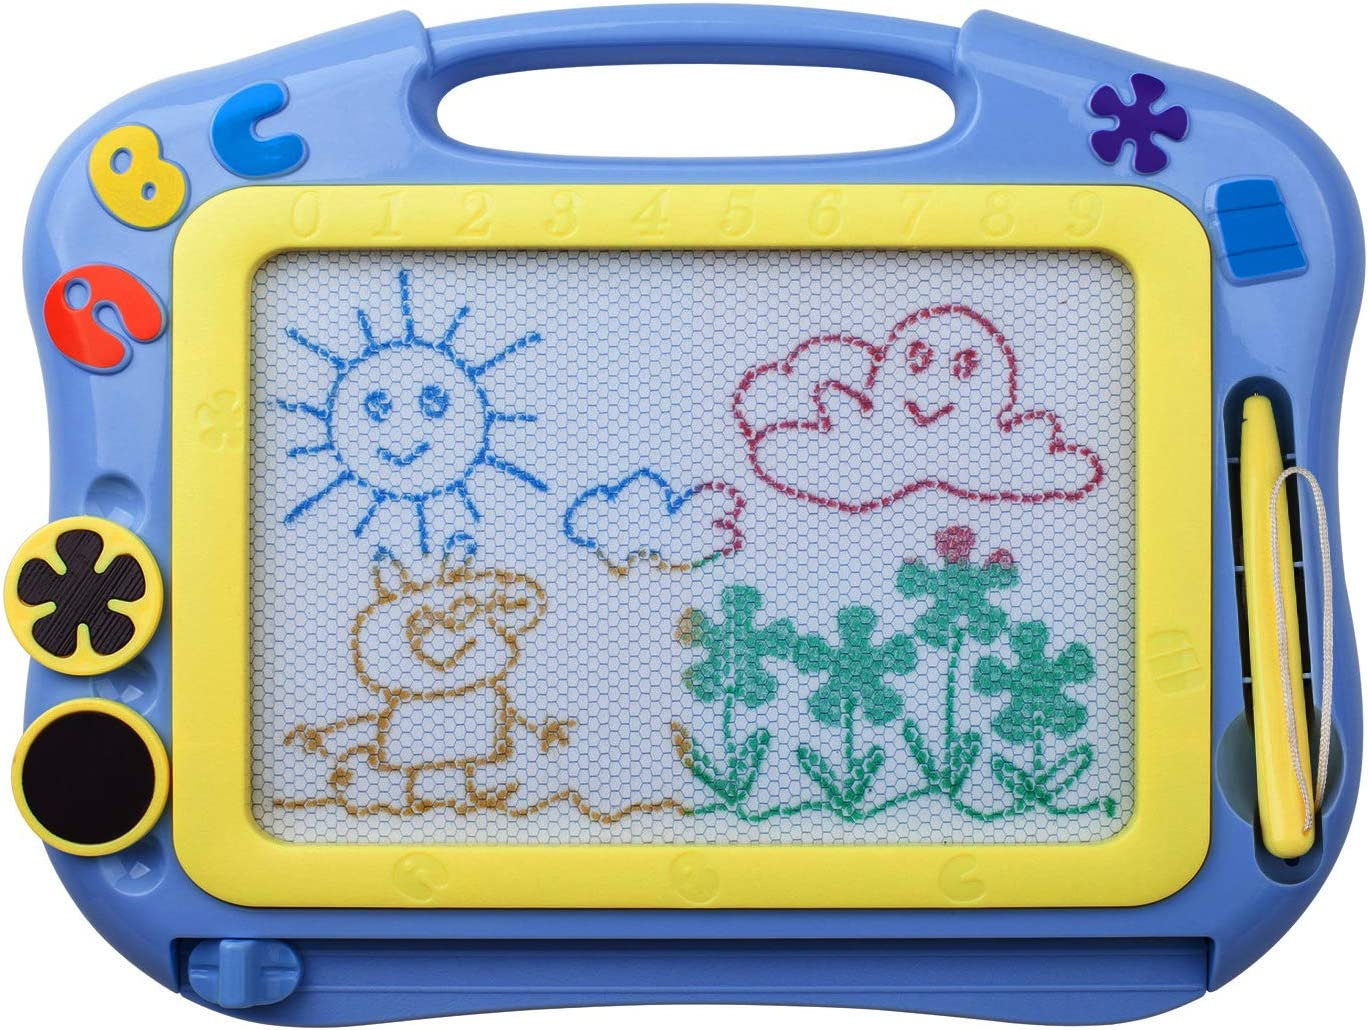 ikidsislands IKS85B [Travel Size] Color Magnetic Drawing Board for Kids, Doodle Board for Toddlers, Sketch Pad Toy for Little Boys (Blue)